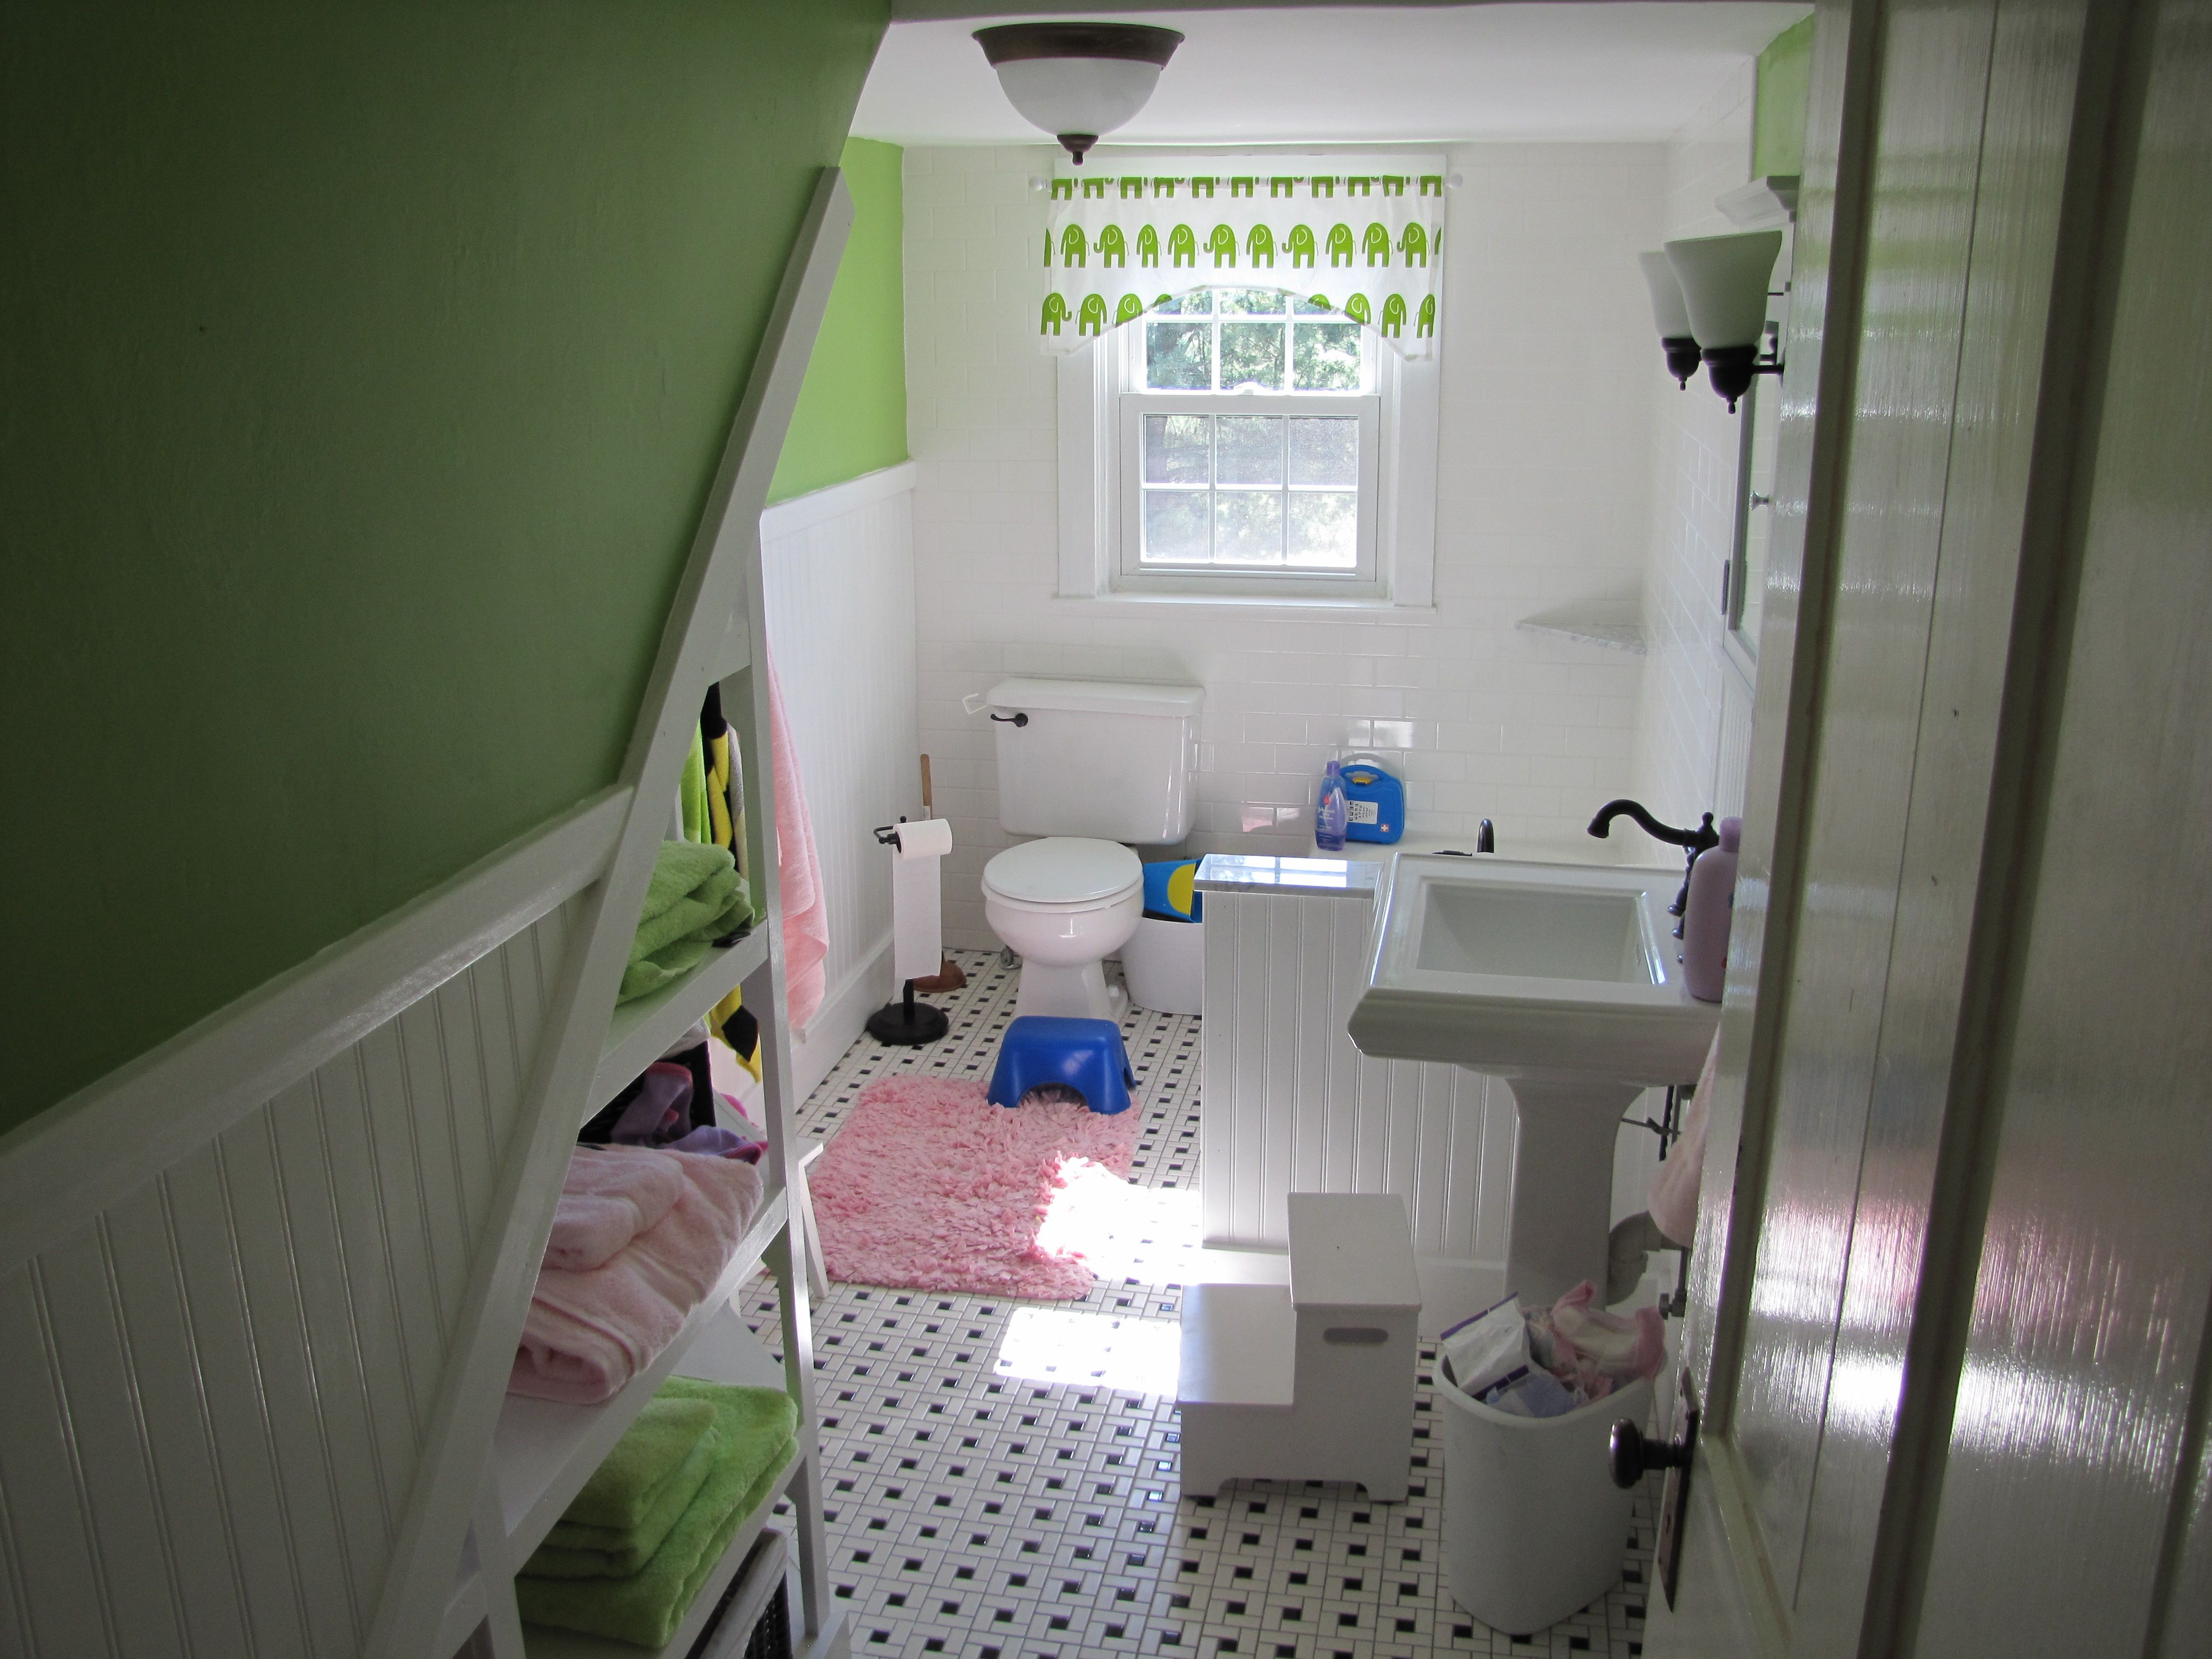 Colonial Remodeling Model Remodelling bathroom remodel in an early 1900's home | vincent abell